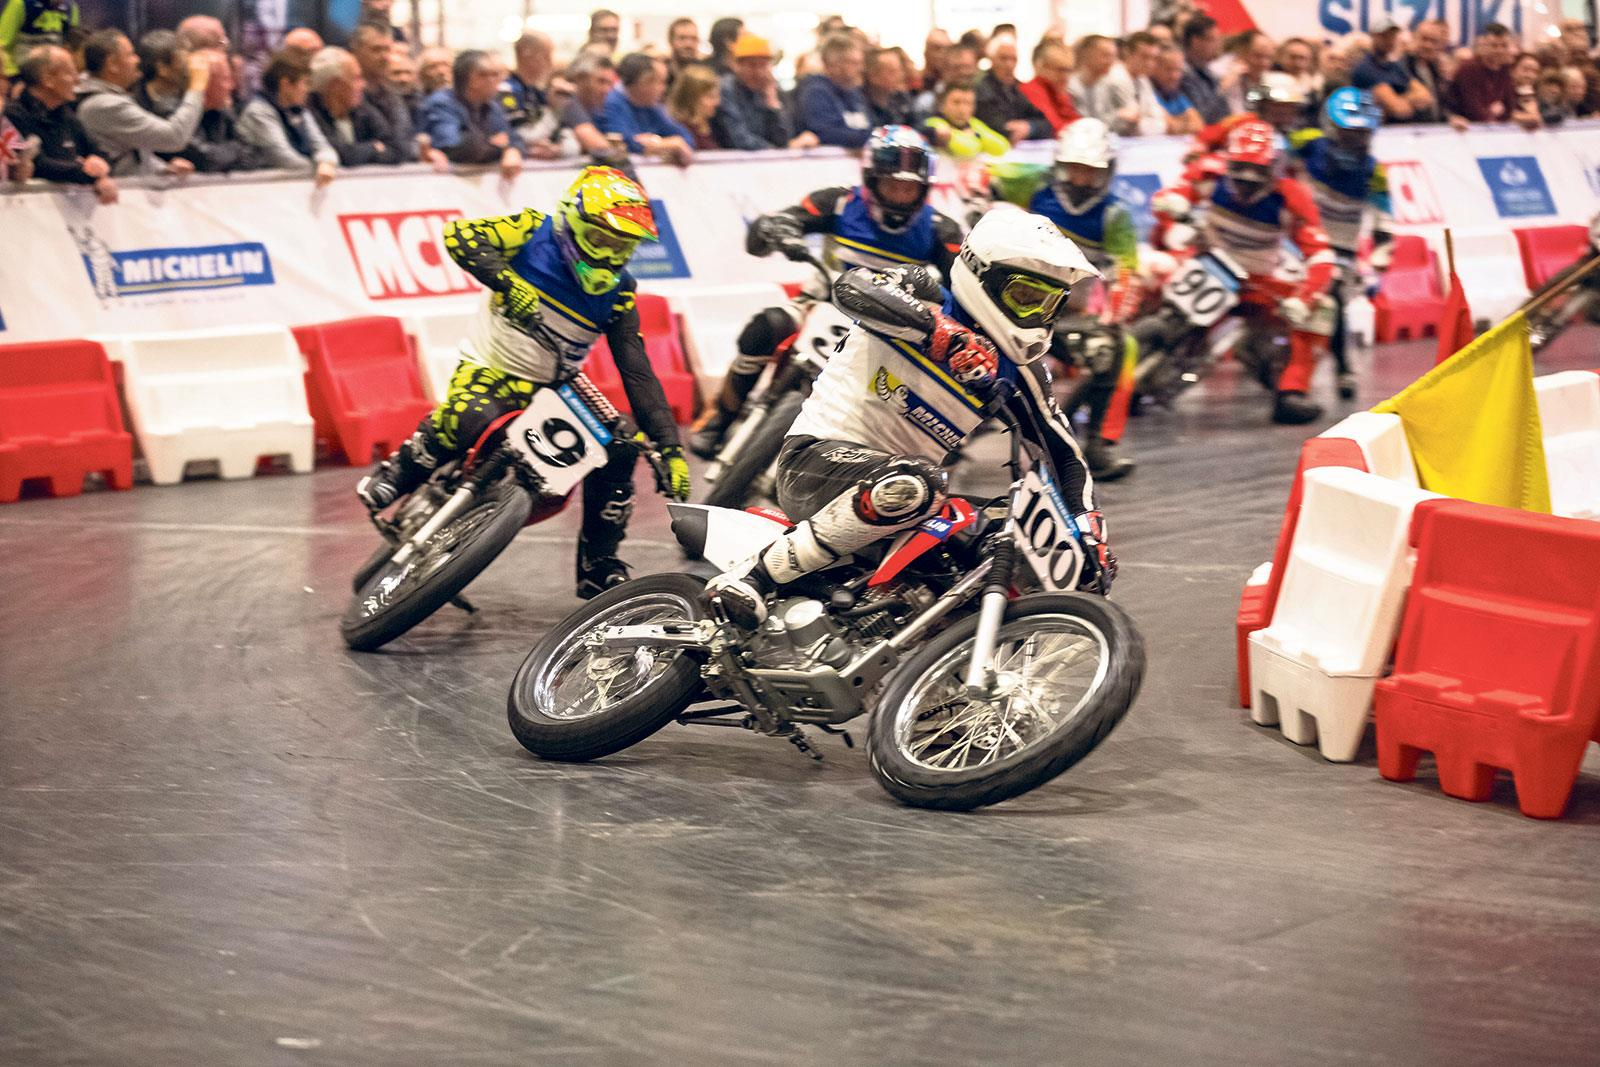 Michelin Thunderdrome at the 2018 Carole Nash #MCNShow | MCN